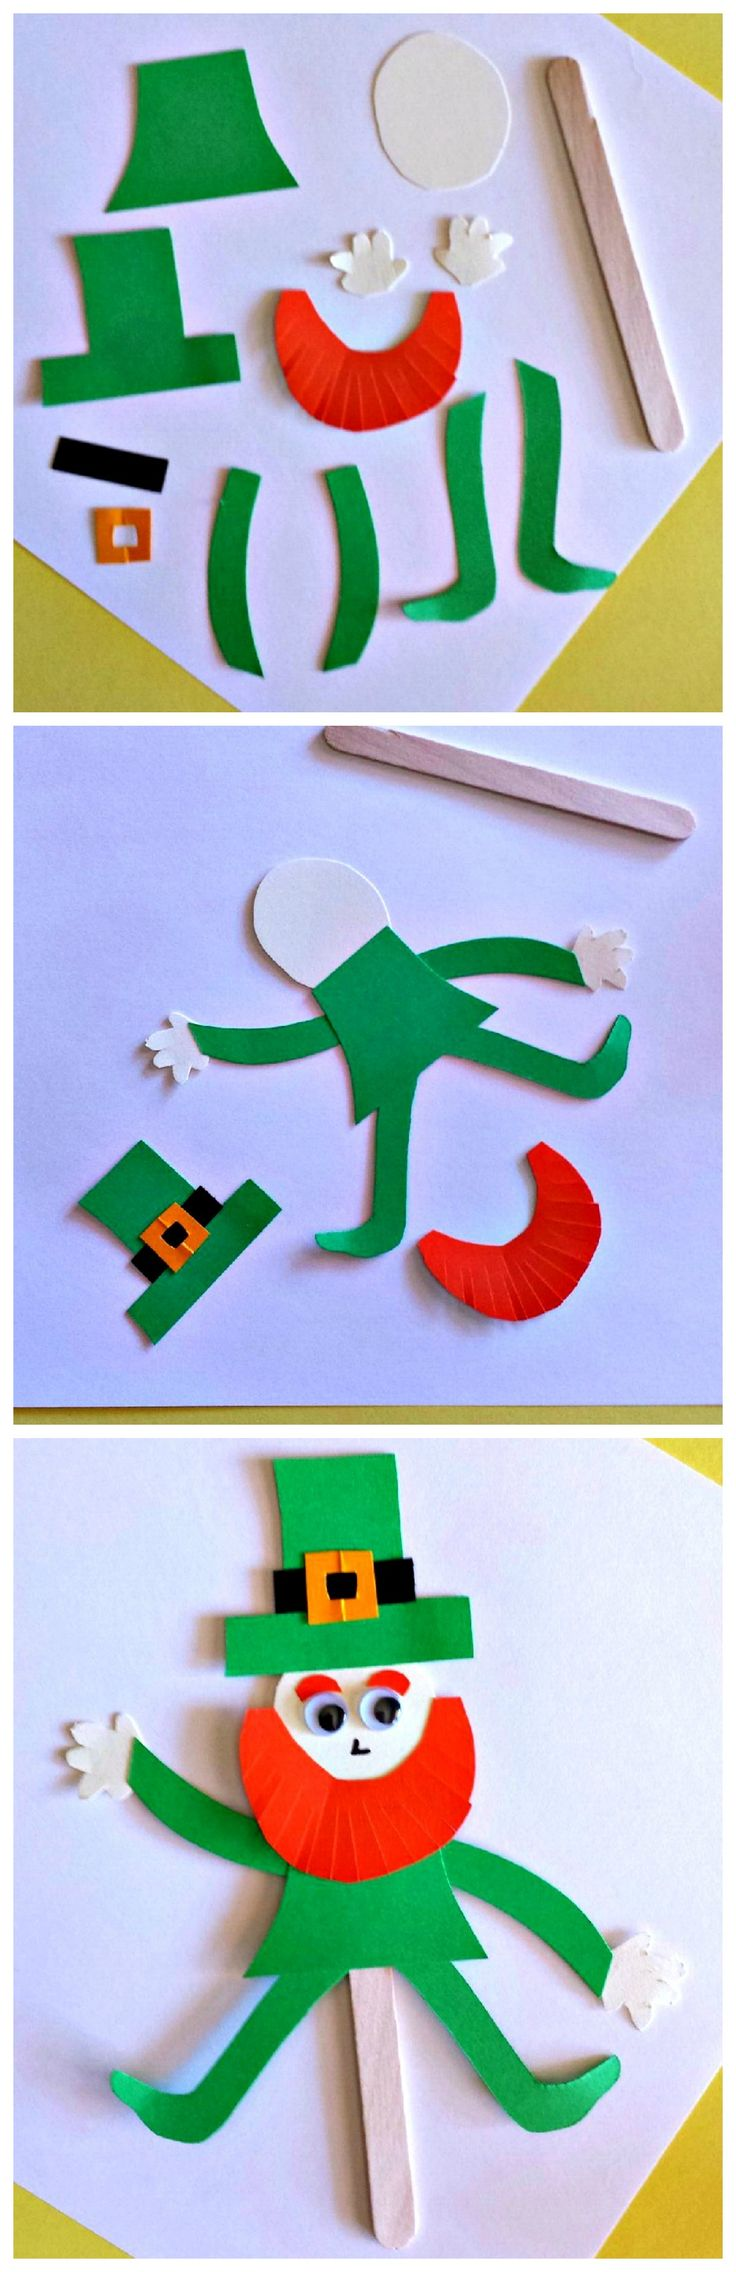 Duendecillo. Manualidades para el Día de San Patricio - Popsicle Stick Leprechaun puppet for kids!. St Patricks Day craft http://www.craftymorning.com/popsicle-stick-leprechaun-puppet-craft-st-patricks-day/